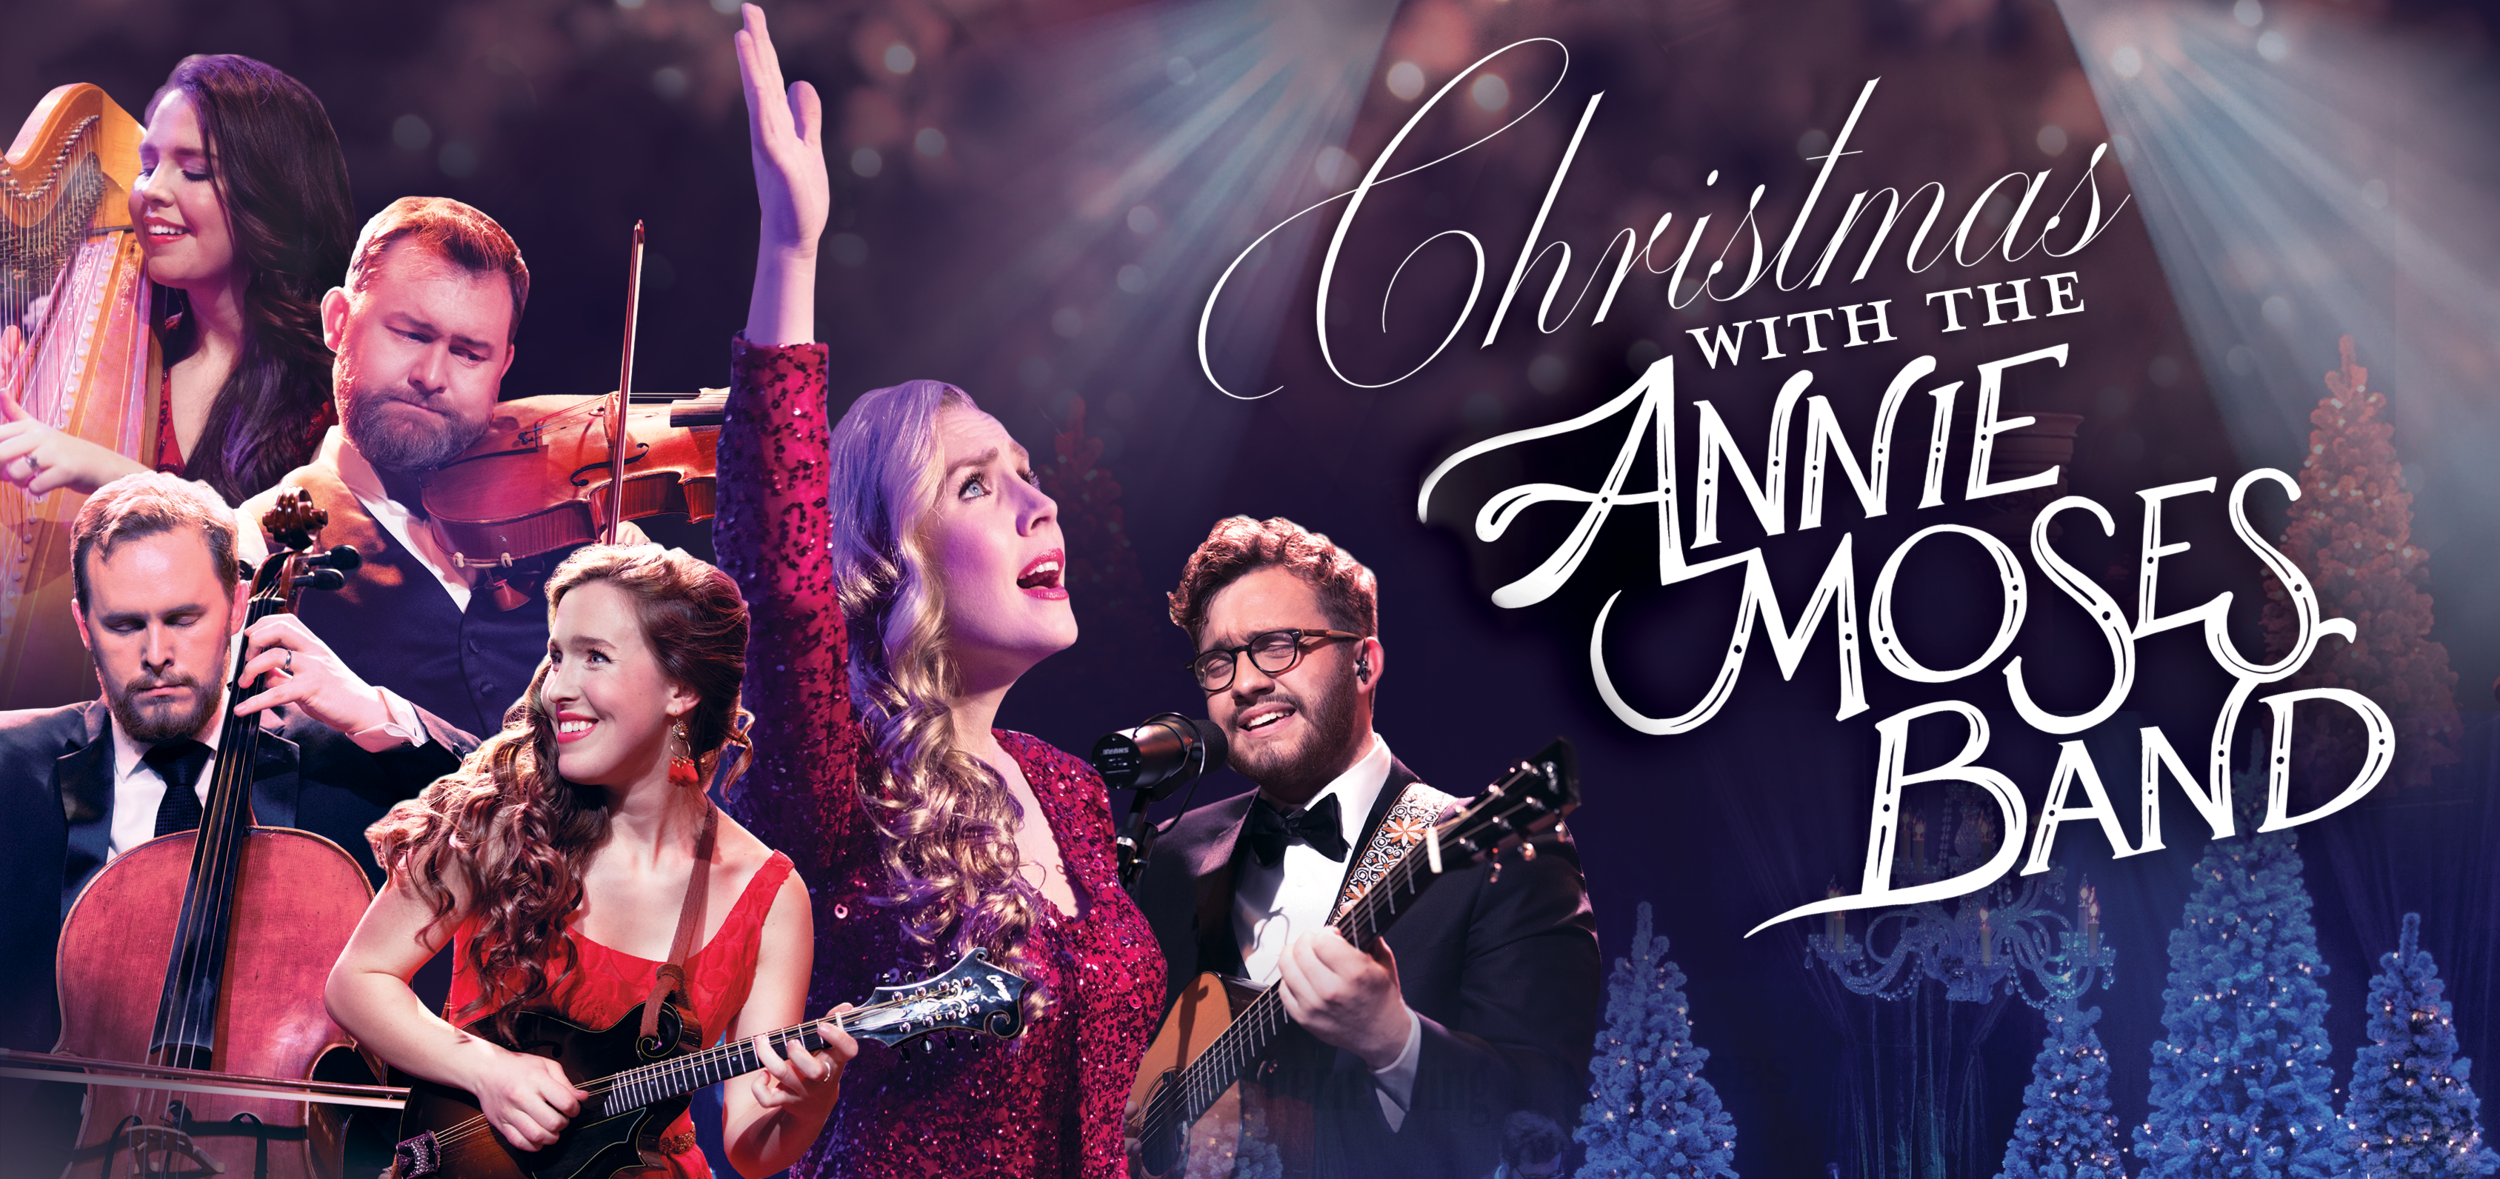 Christmas with the Annie Moses Band